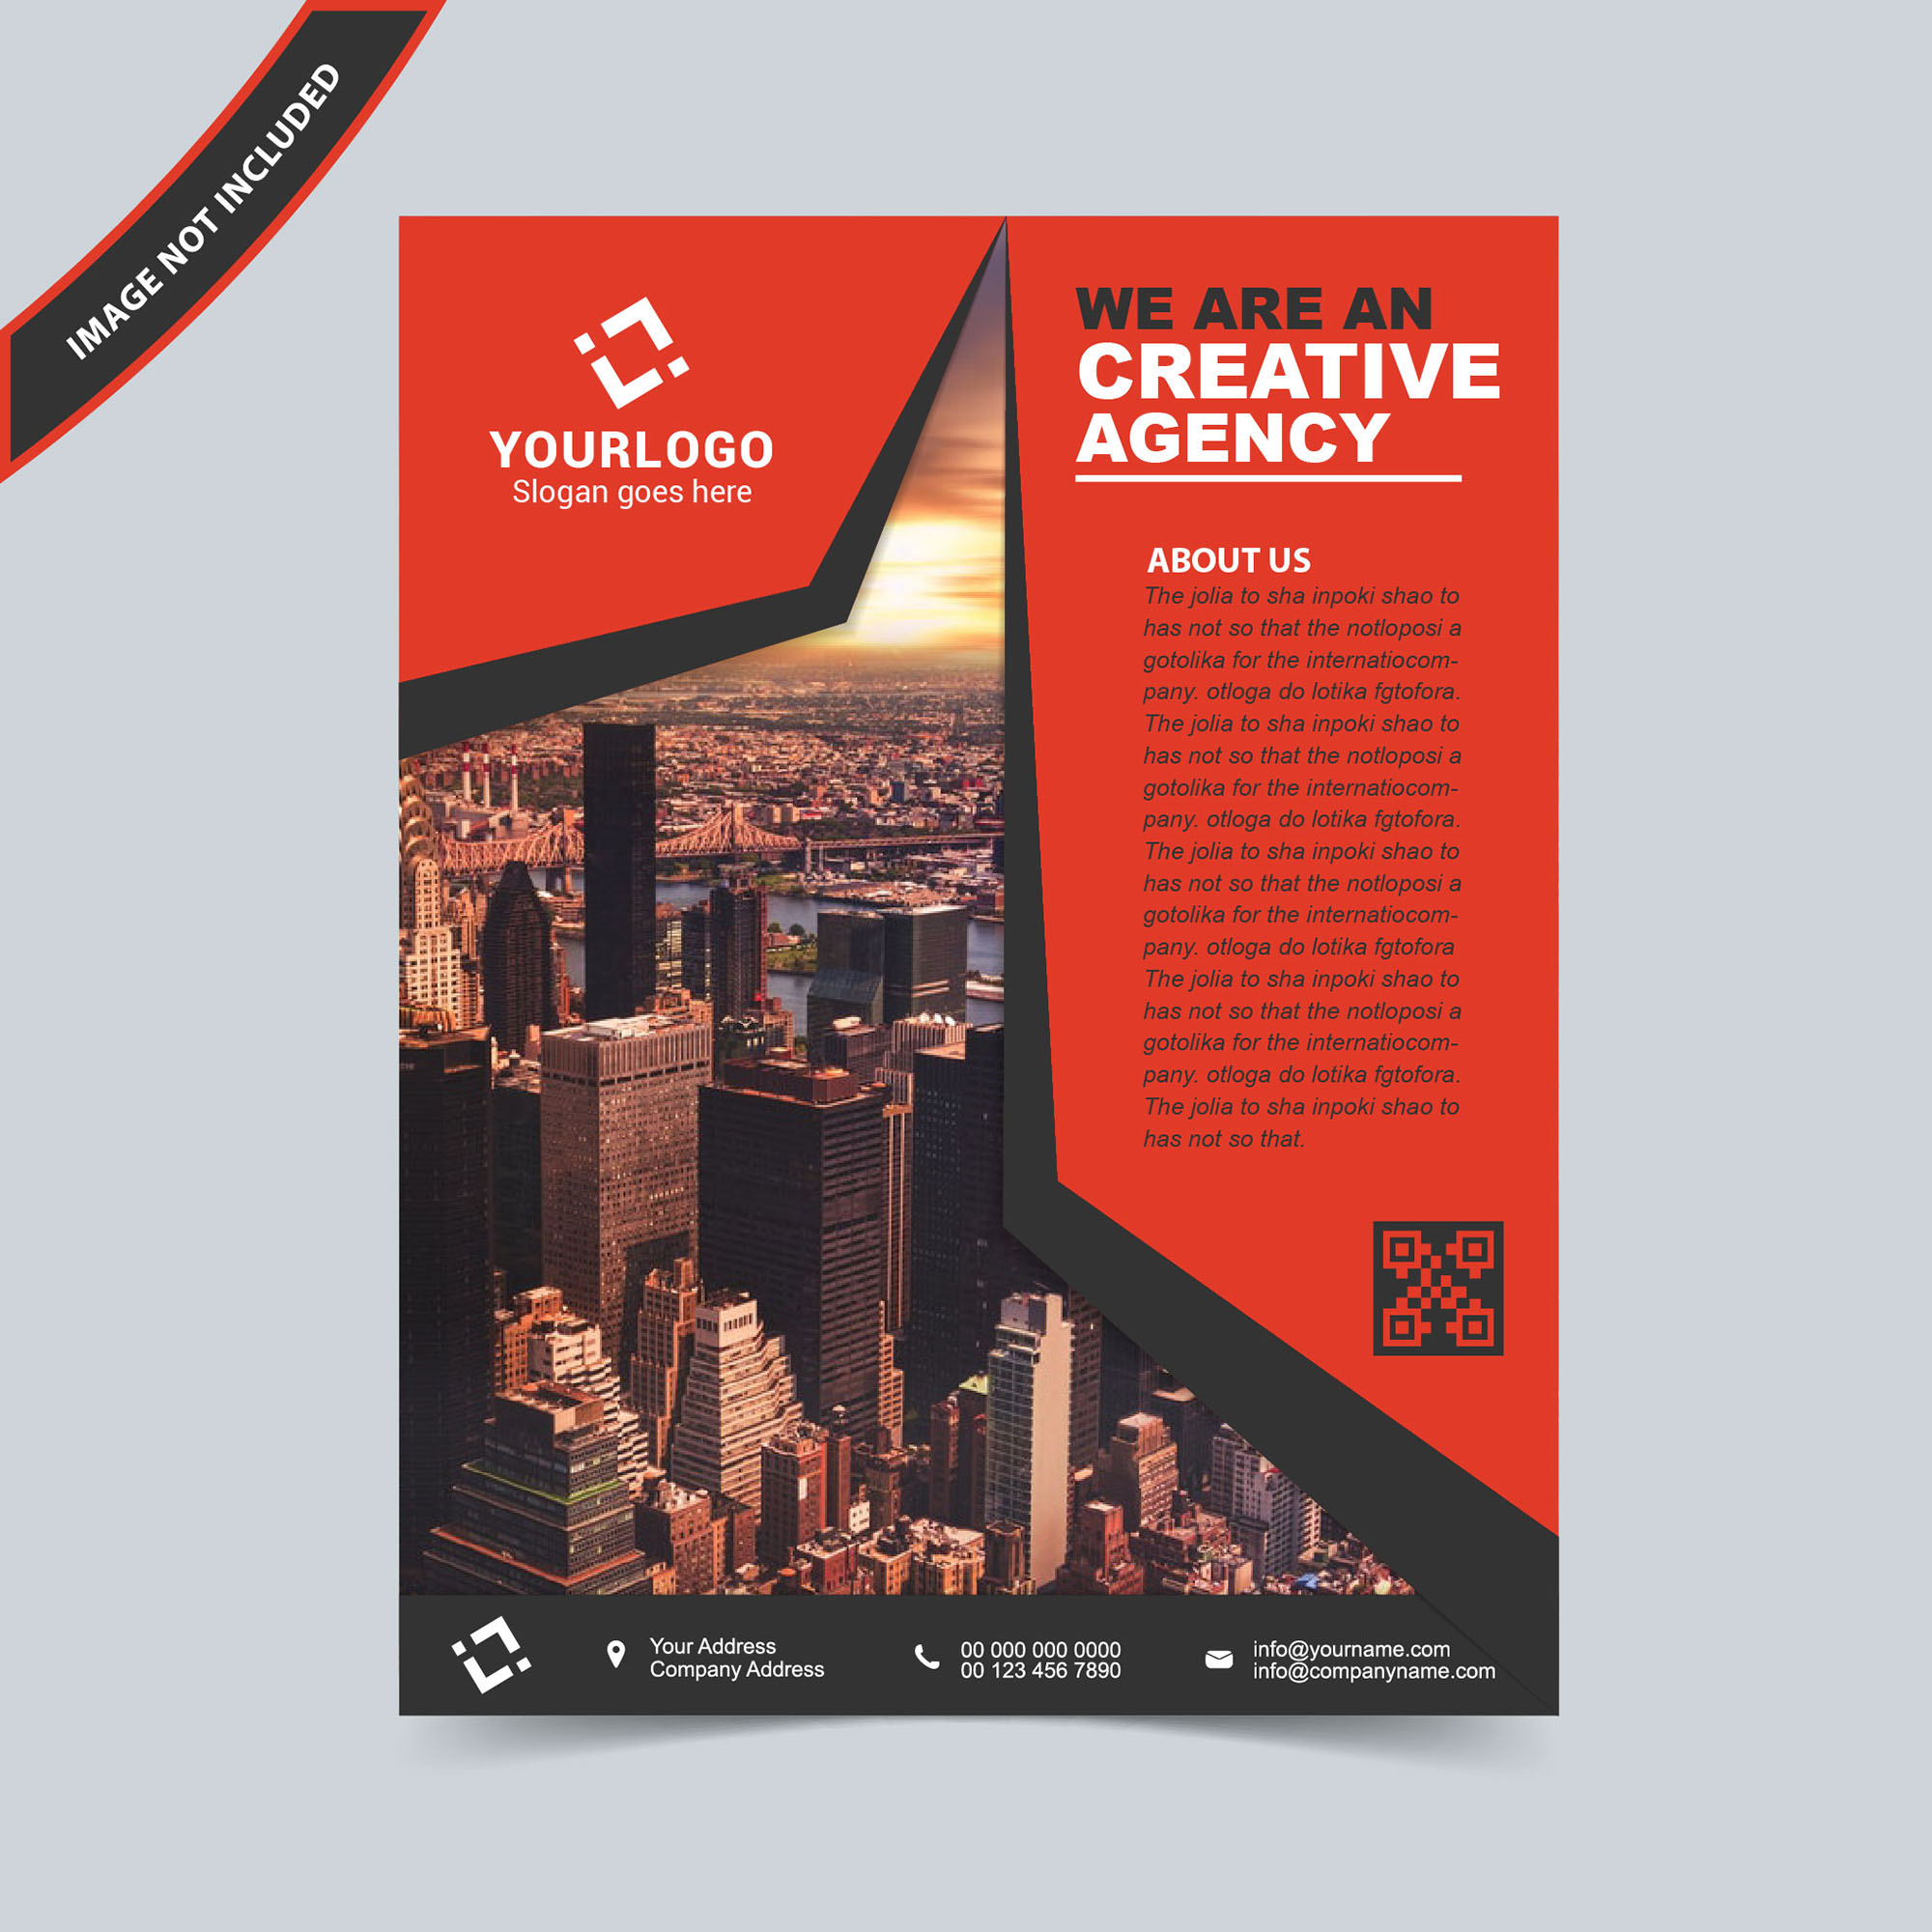 Flyers, Flyer Design, Flyer Template, Free Flyer Design, Abstract, Business,  Event Flyer Examples